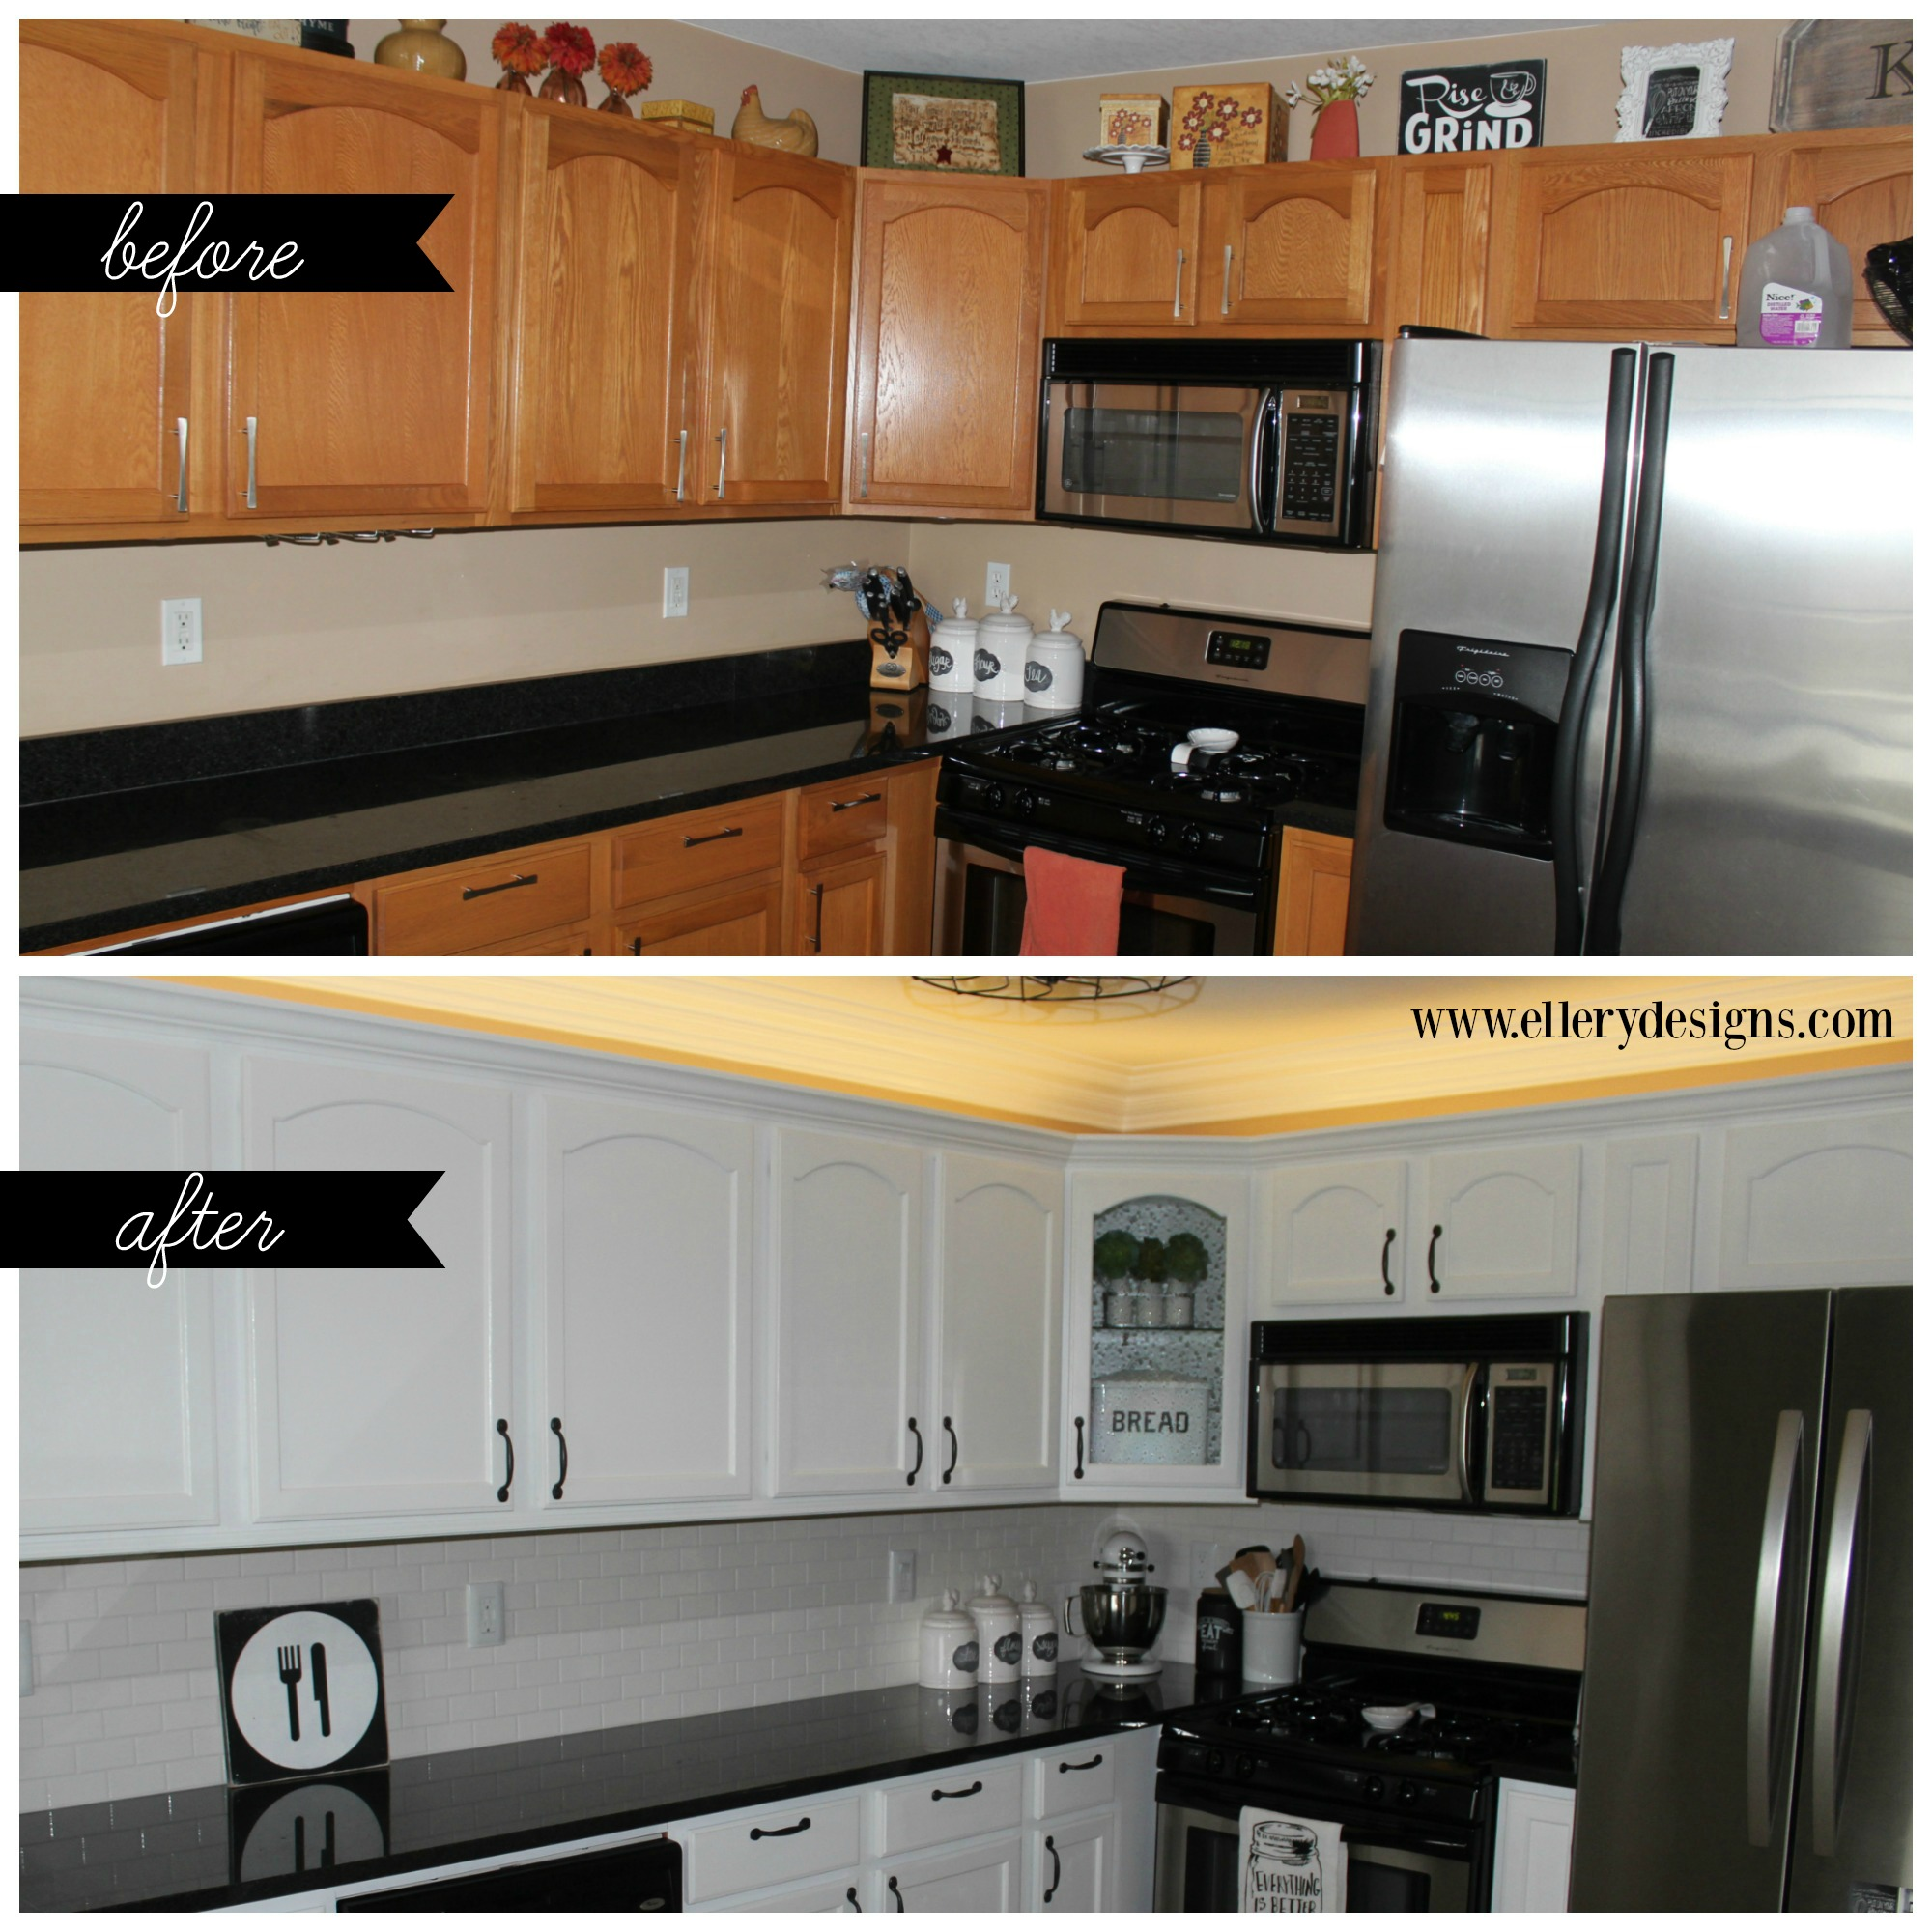 Complete Kitchen Makeover - ElleryDesigns.com